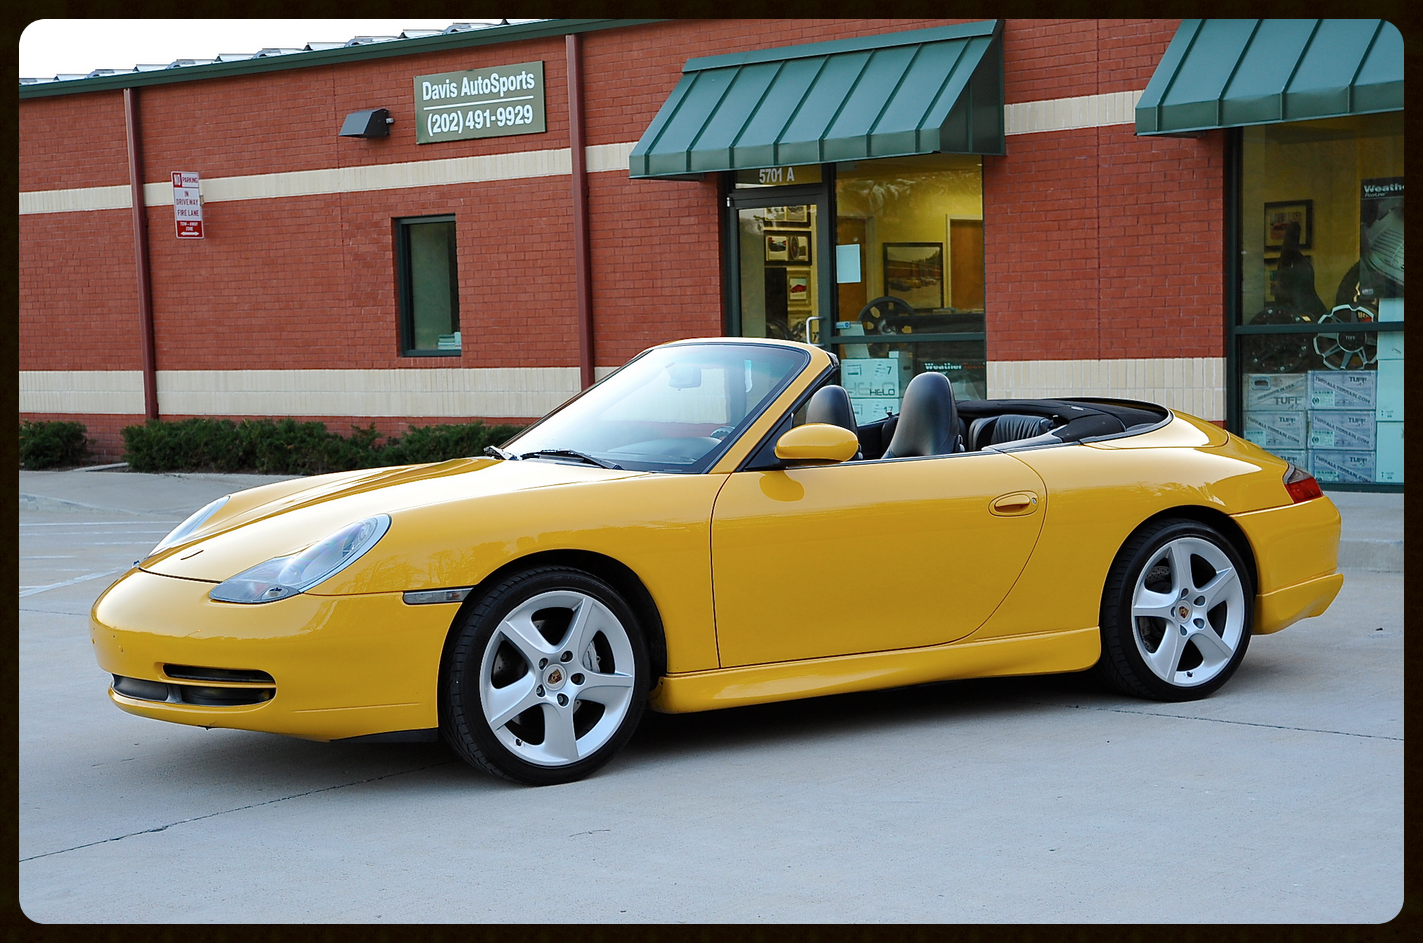 Very RARE 996 C4 Cab in Speed Yellow with Factory Hard Top...Only 38 Produced. Carbon Fiber Package and More